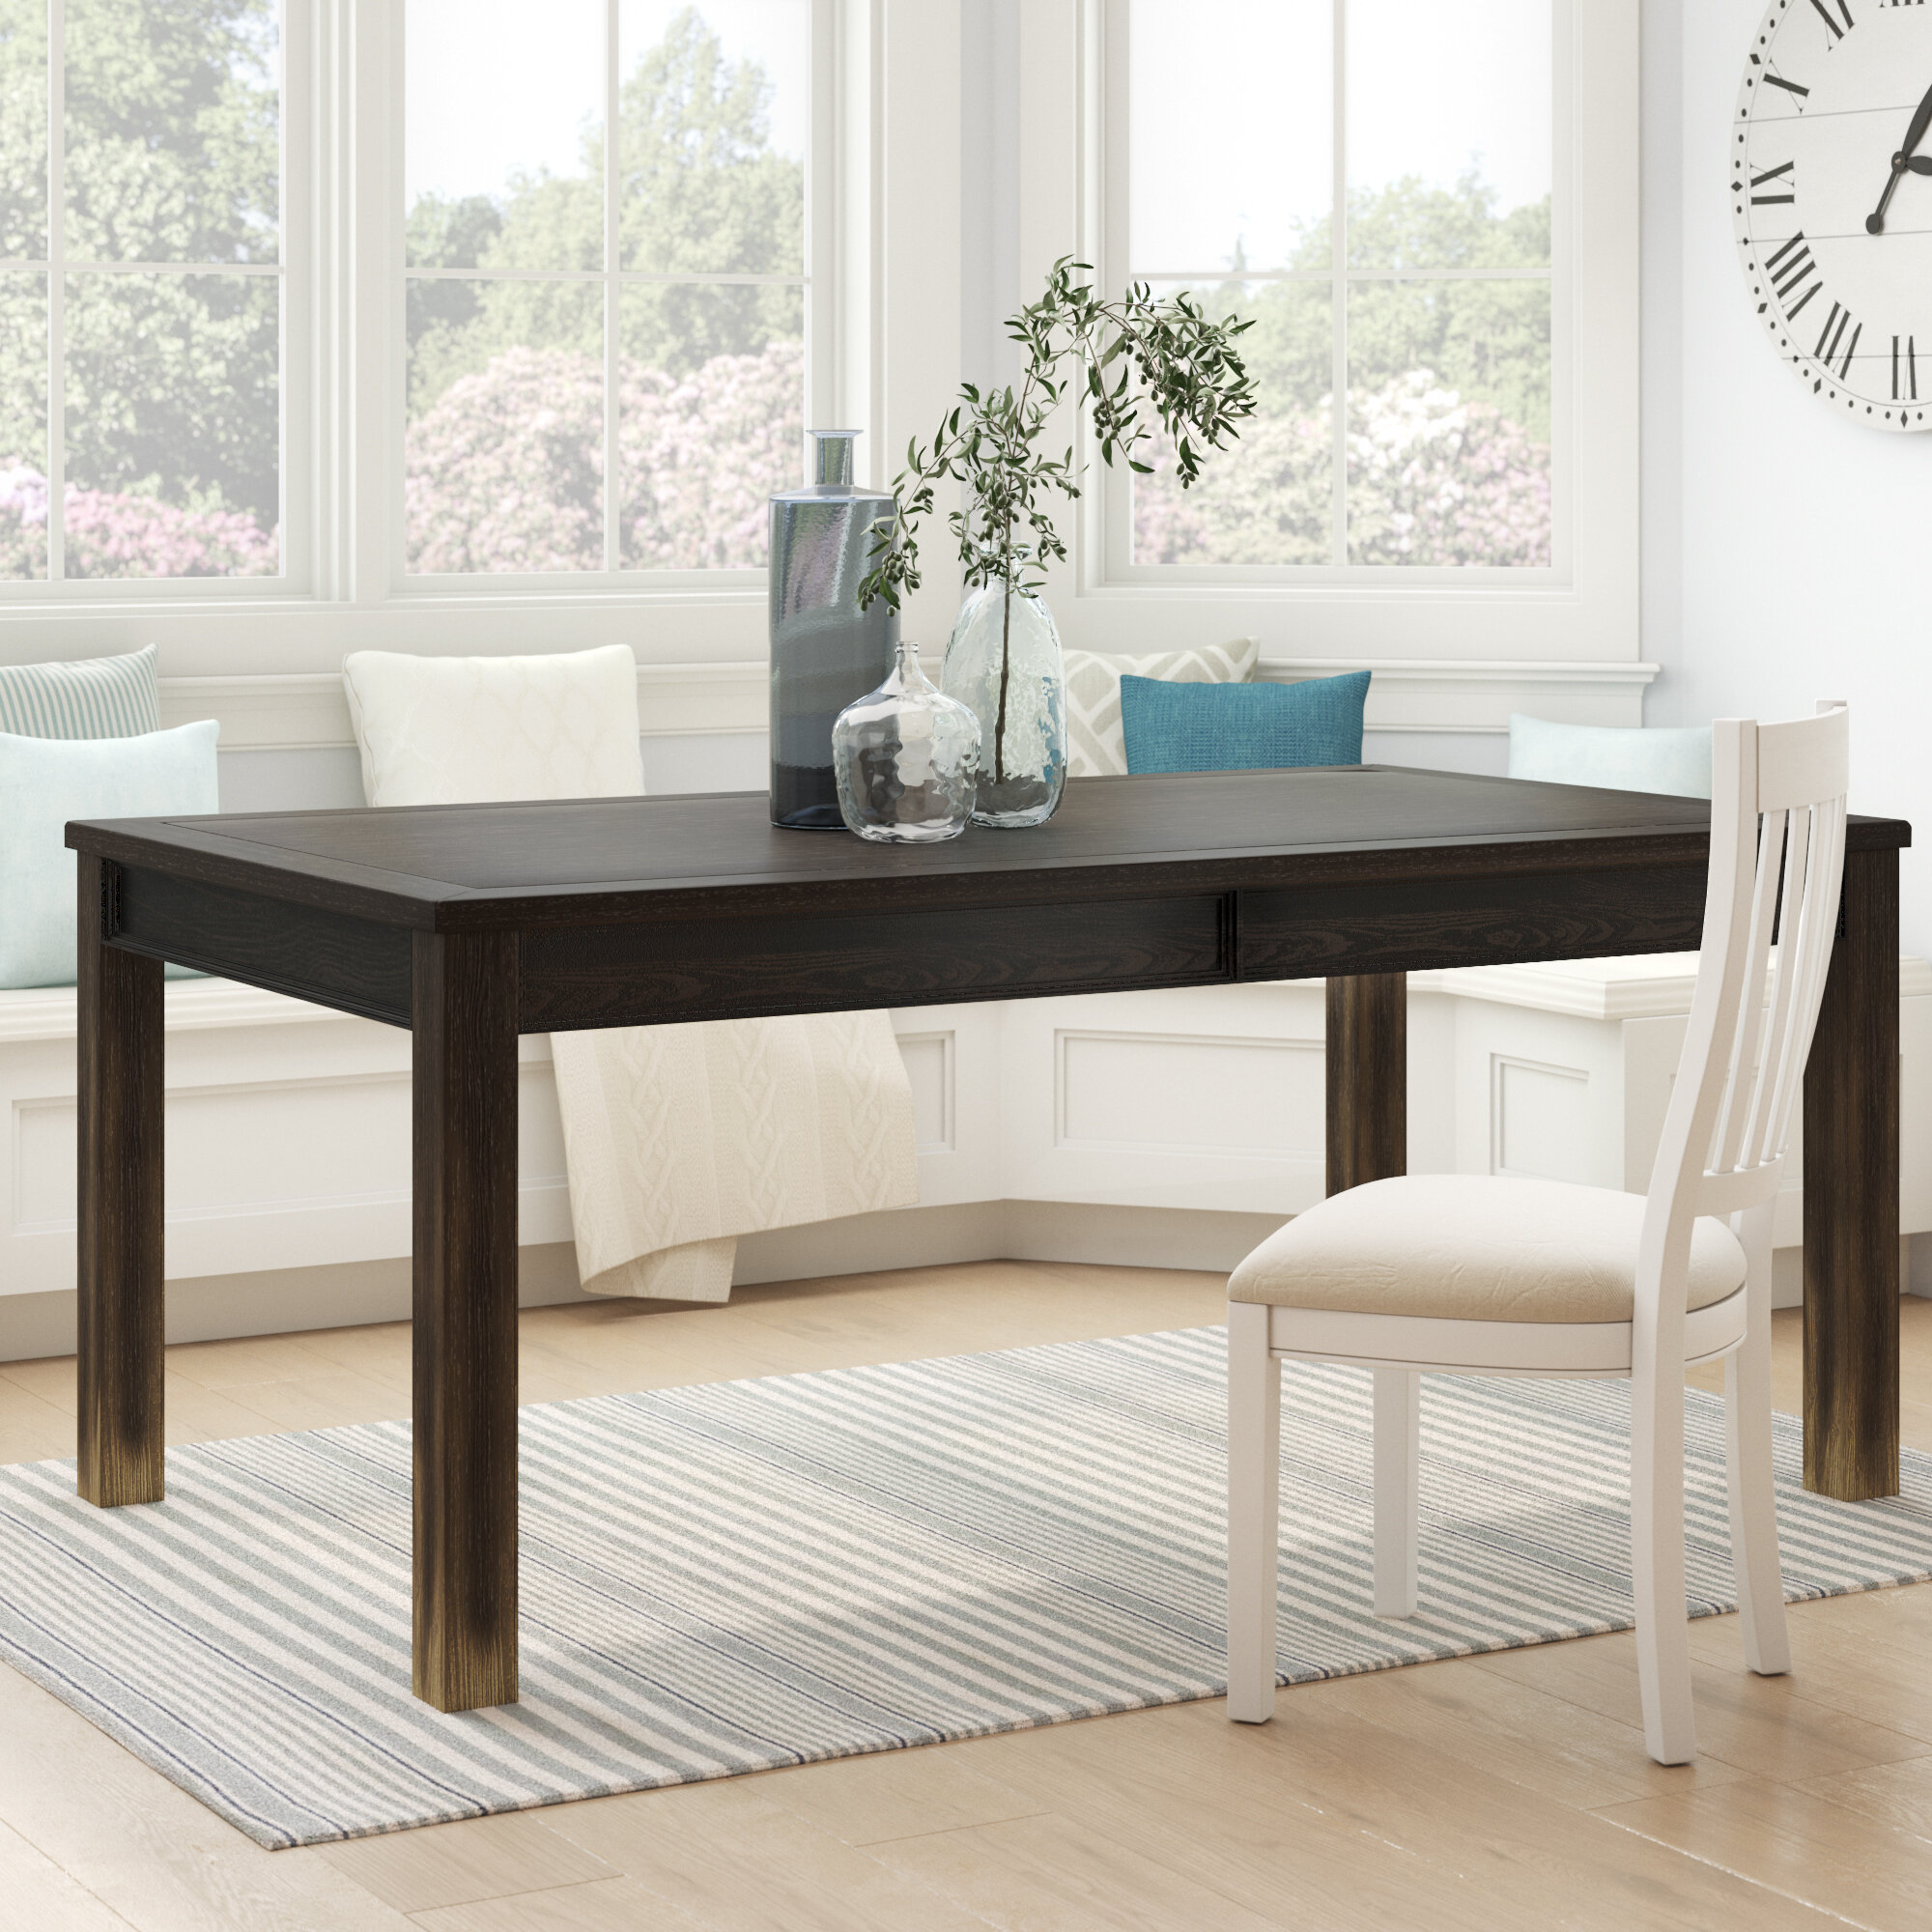 Birch LaneTM Heritage Calila Contemporary Extendable Dining Table Reviews